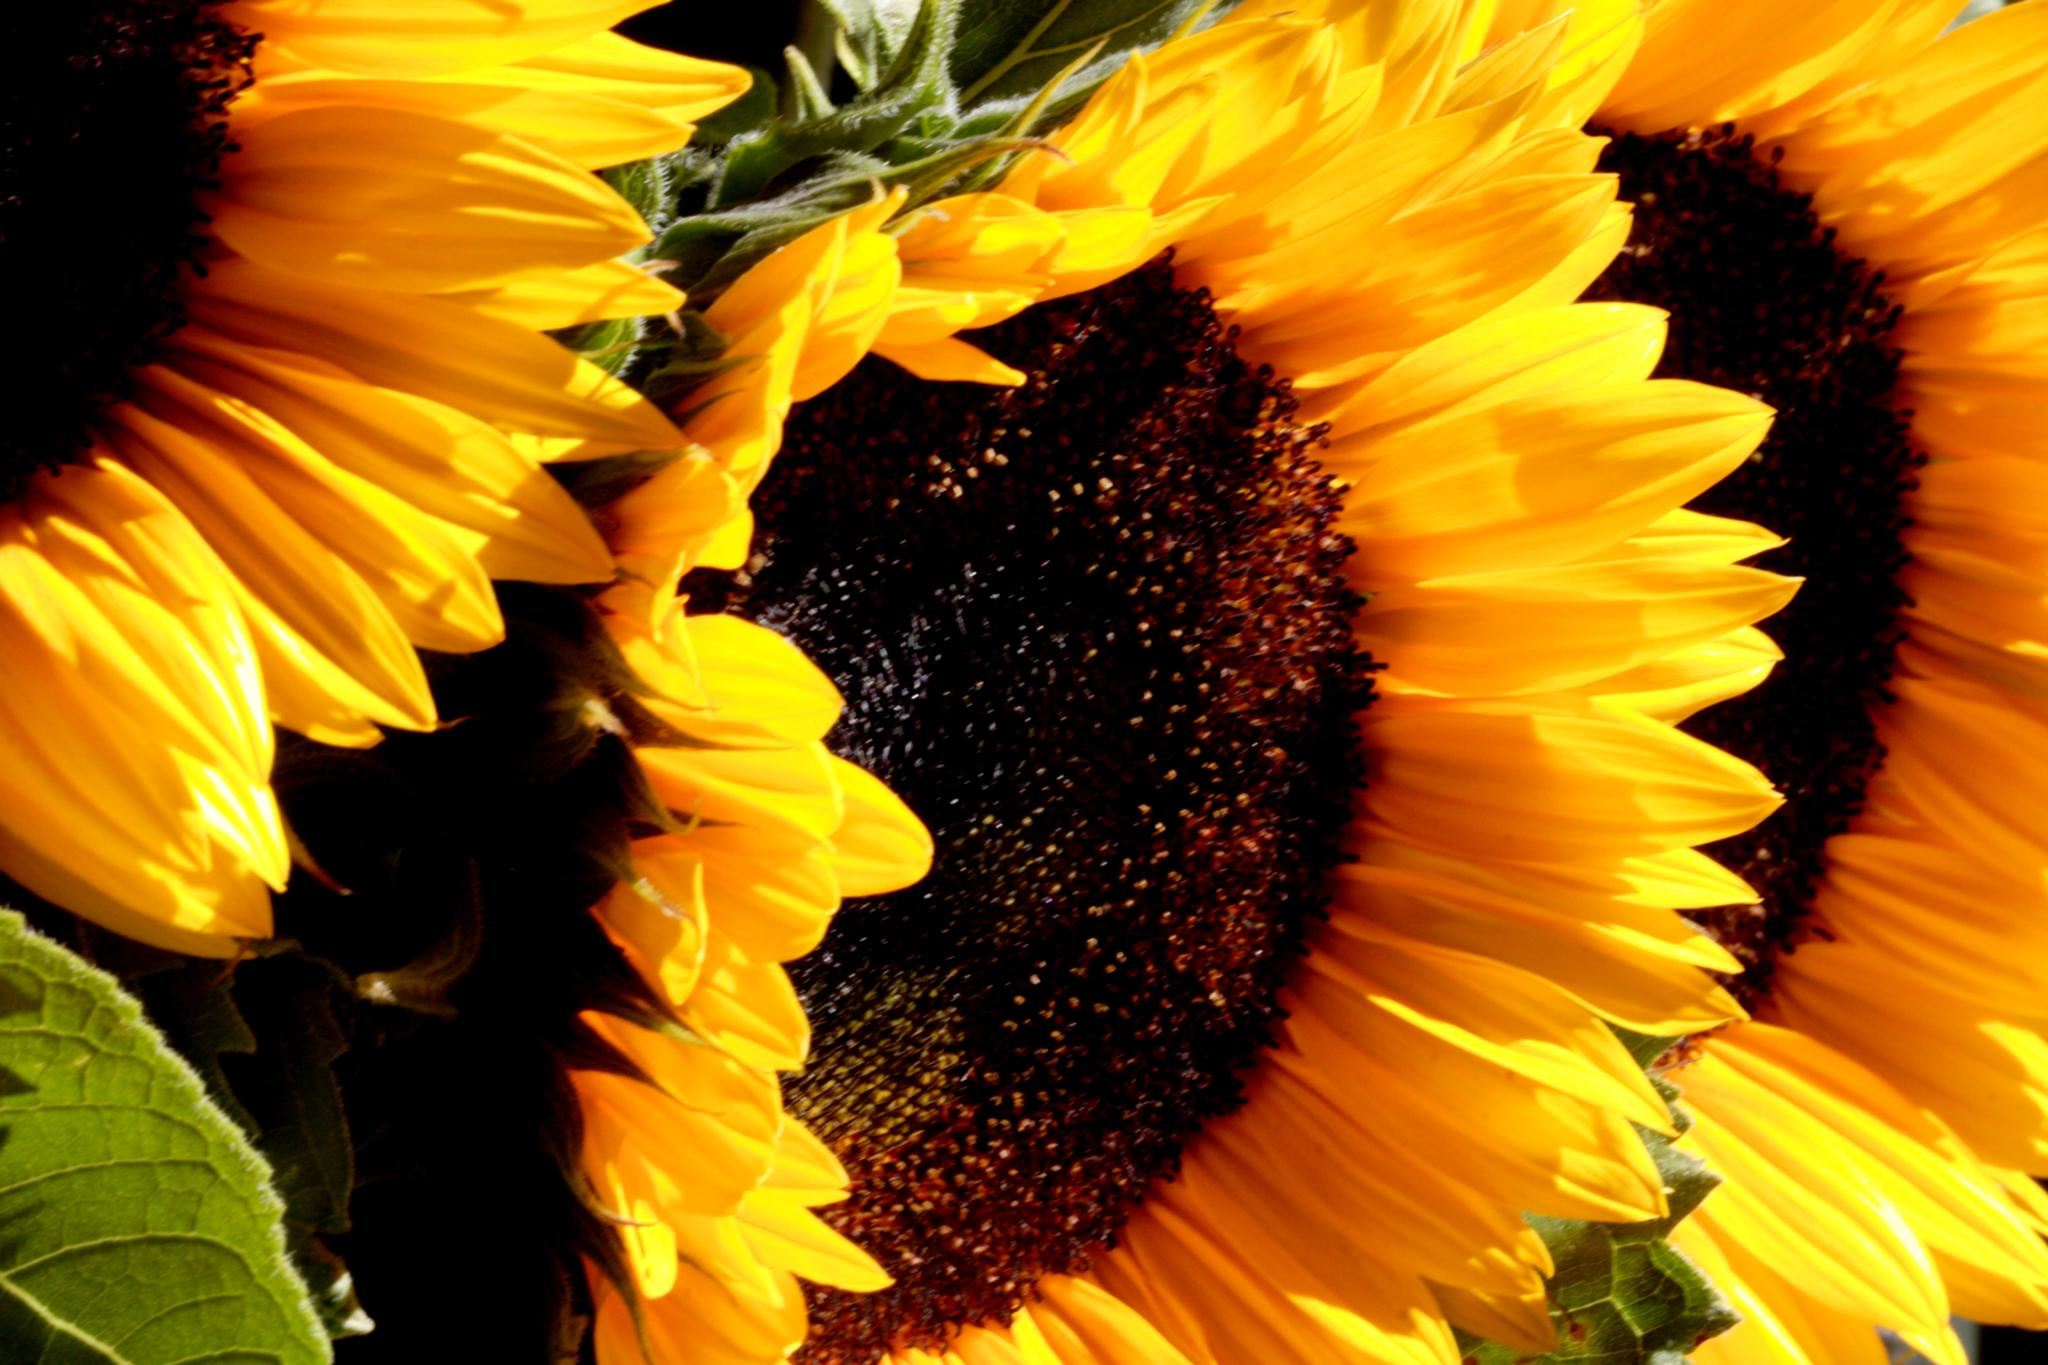 Sunflowers by David Foster